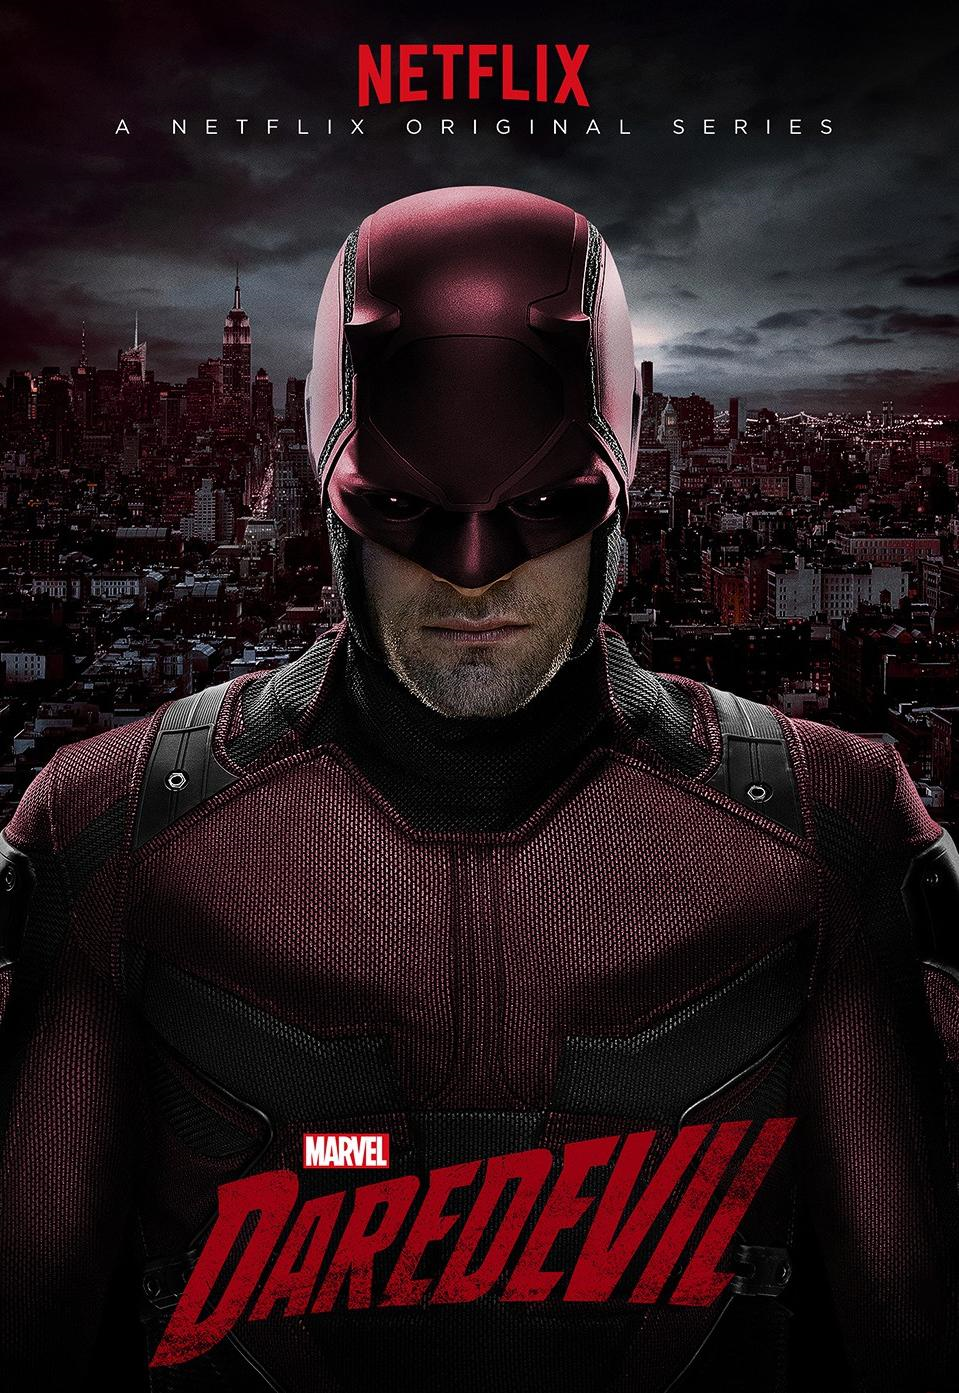 Poster for Daredevil Marvel series